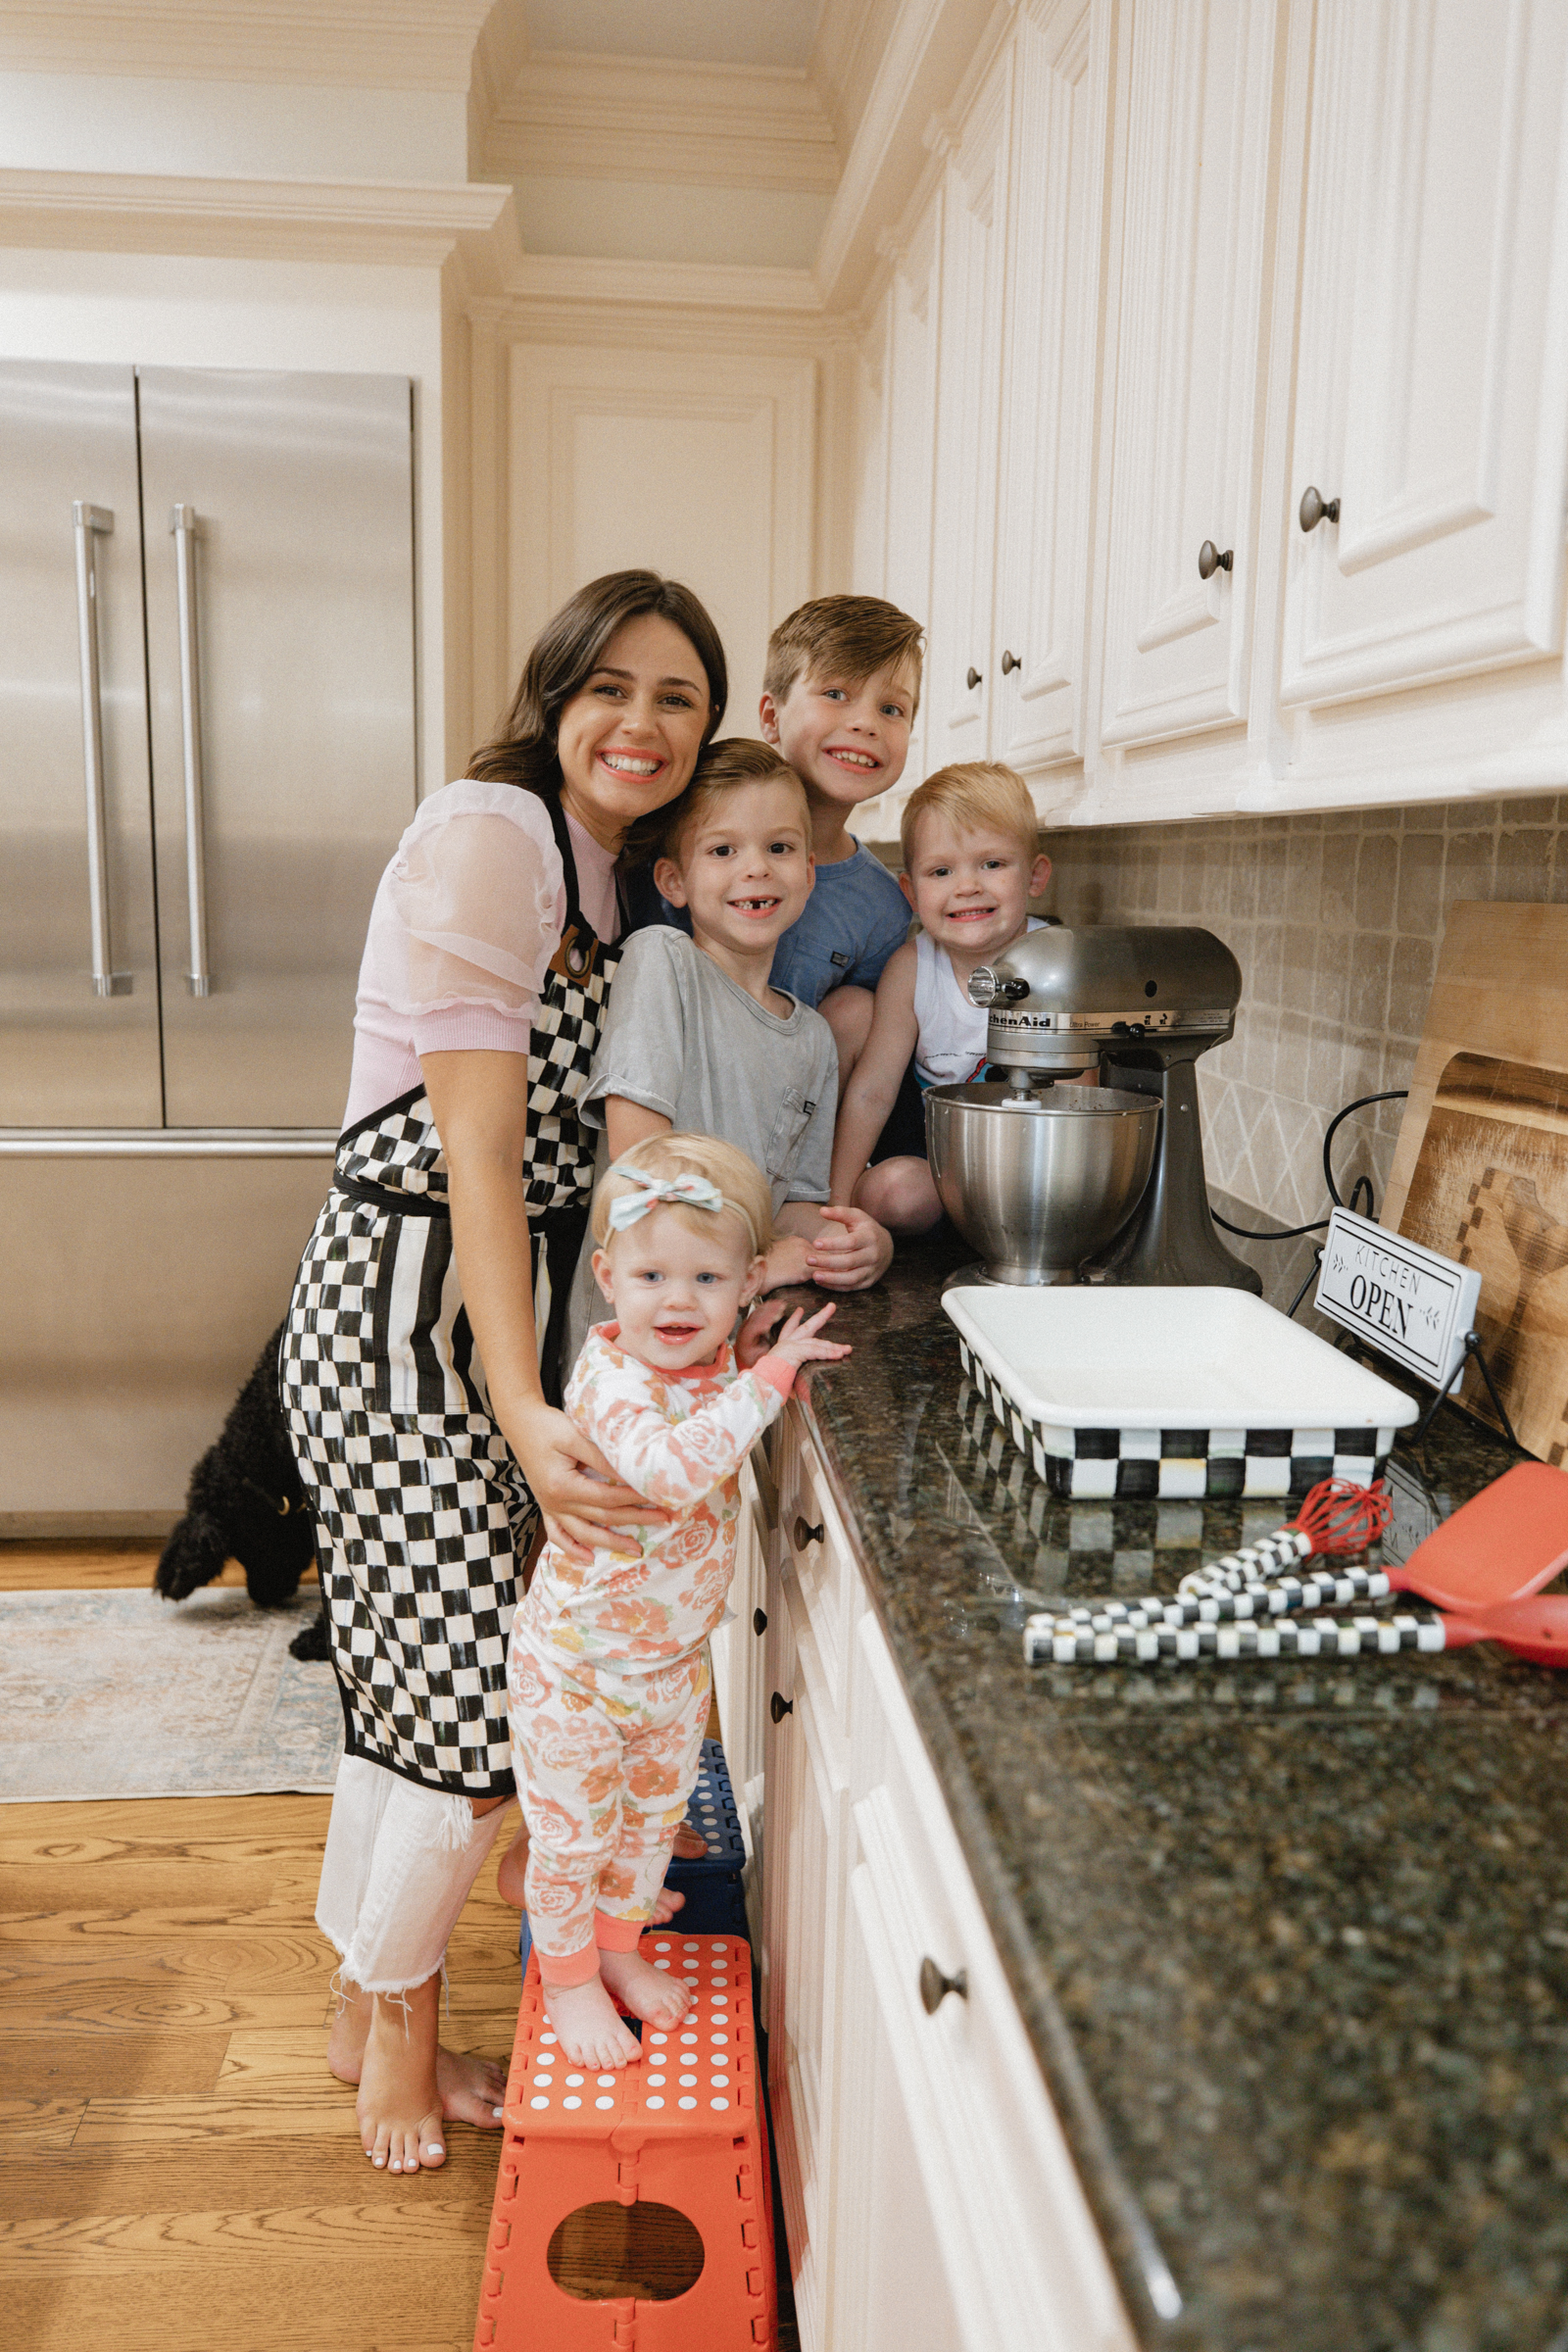 Looking for easy and kid friendly recipes? Elly Brown gathers over 10 Easy Baking Recipes for Kids the whole family will enjoy!